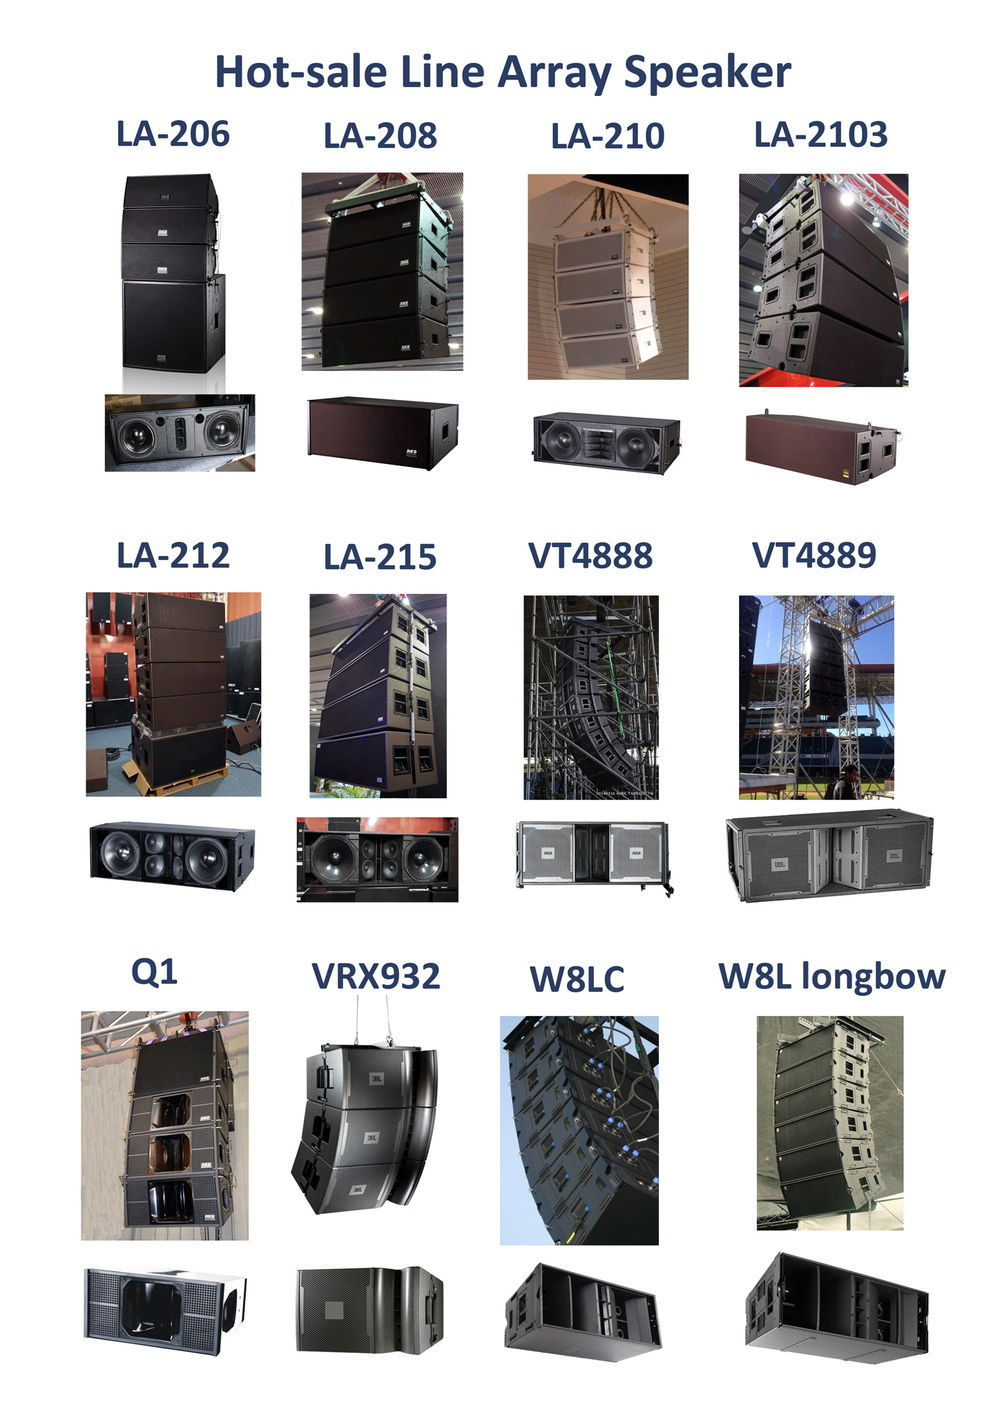 compensato armadio line array